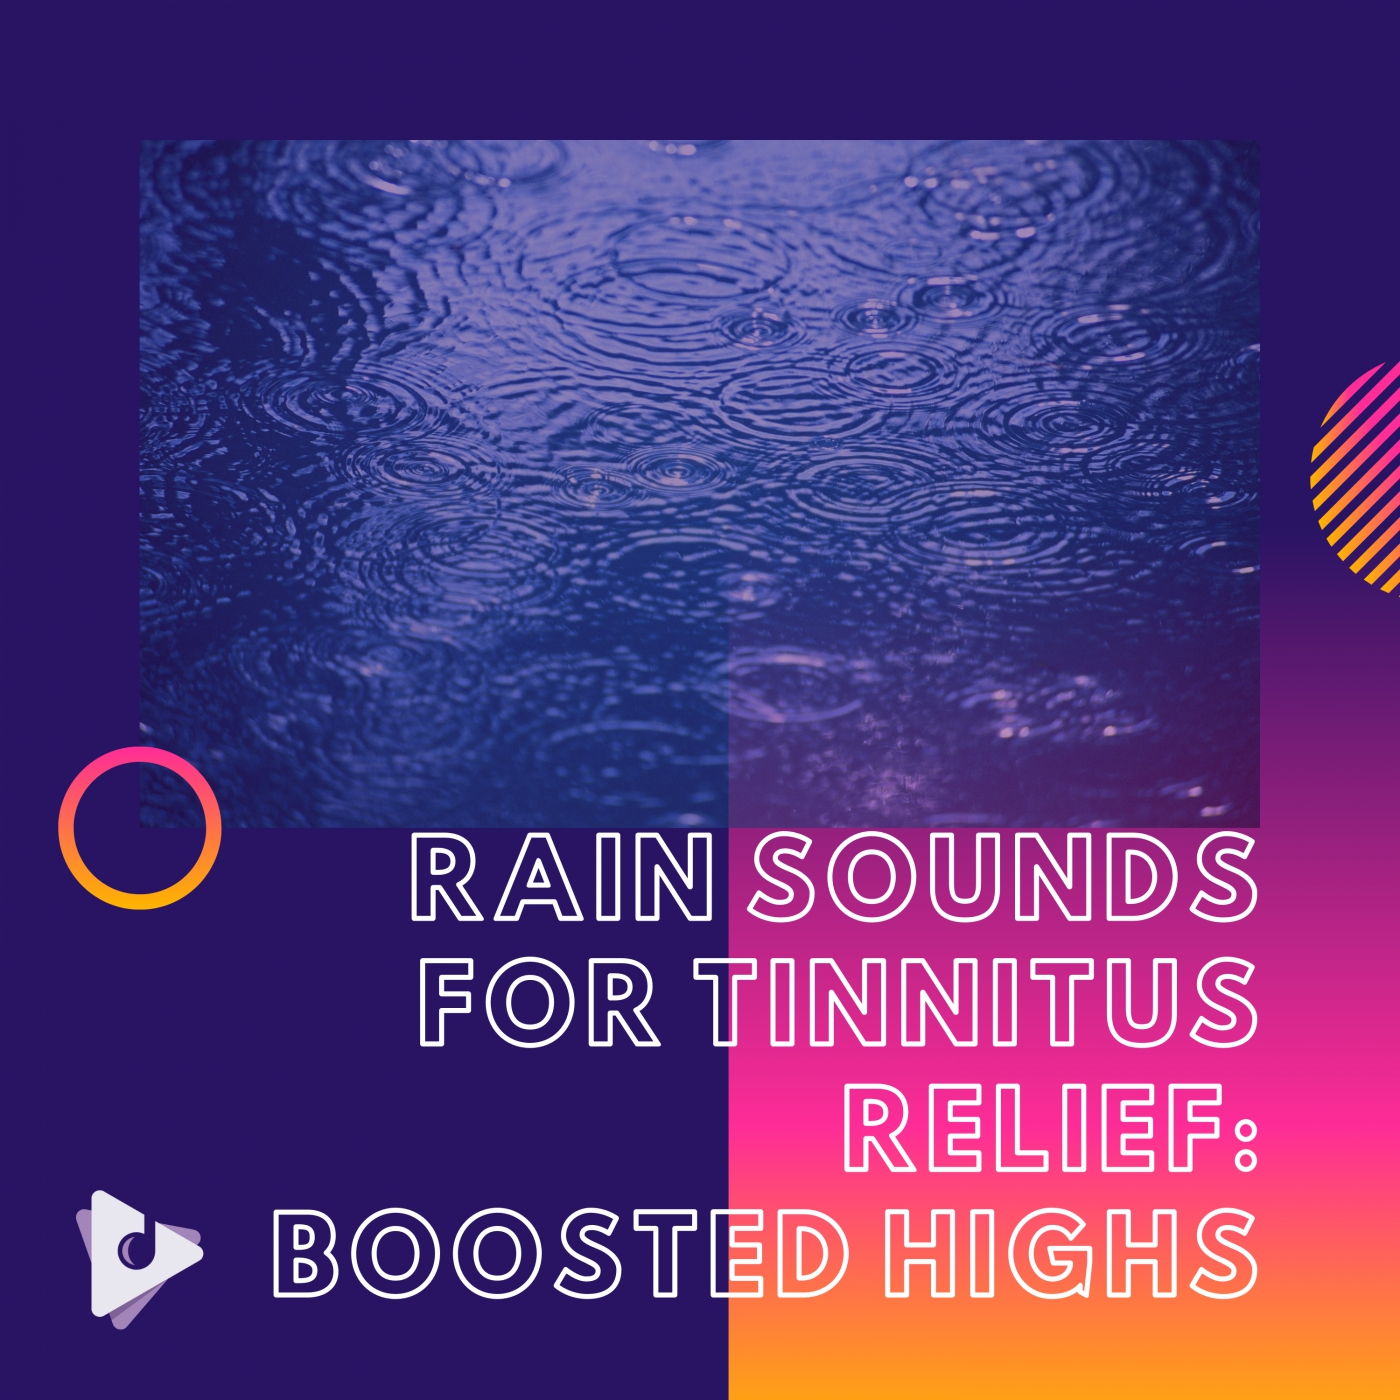 Rain Sounds for Tinnitus Relief: Boosted Highs